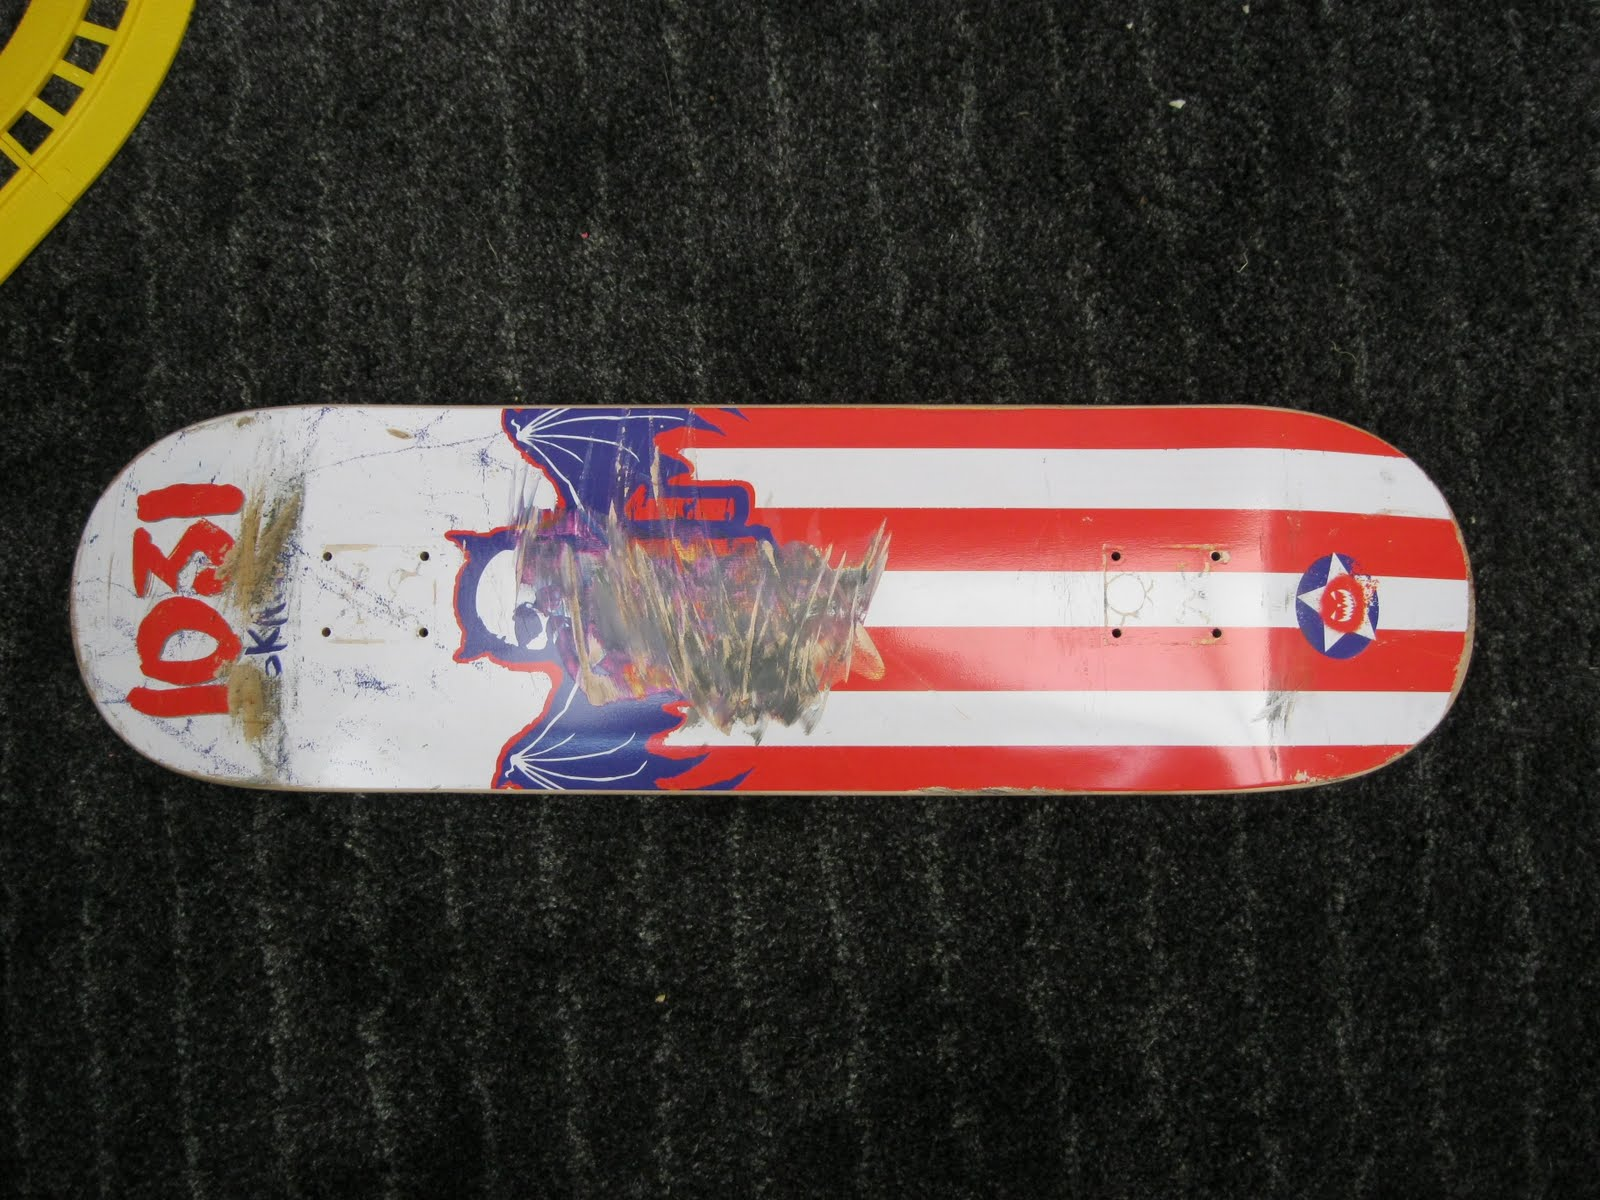 Skateboarding Is My Lifetime Sport Review 1031 Decks Deck Toy Machine Sect Eye Orange After A Year Of Riding The Creepy Crawly I Thought All Would Be Like That One Mellow Strong Good Pop Long Lived Sadly It Wasnt So